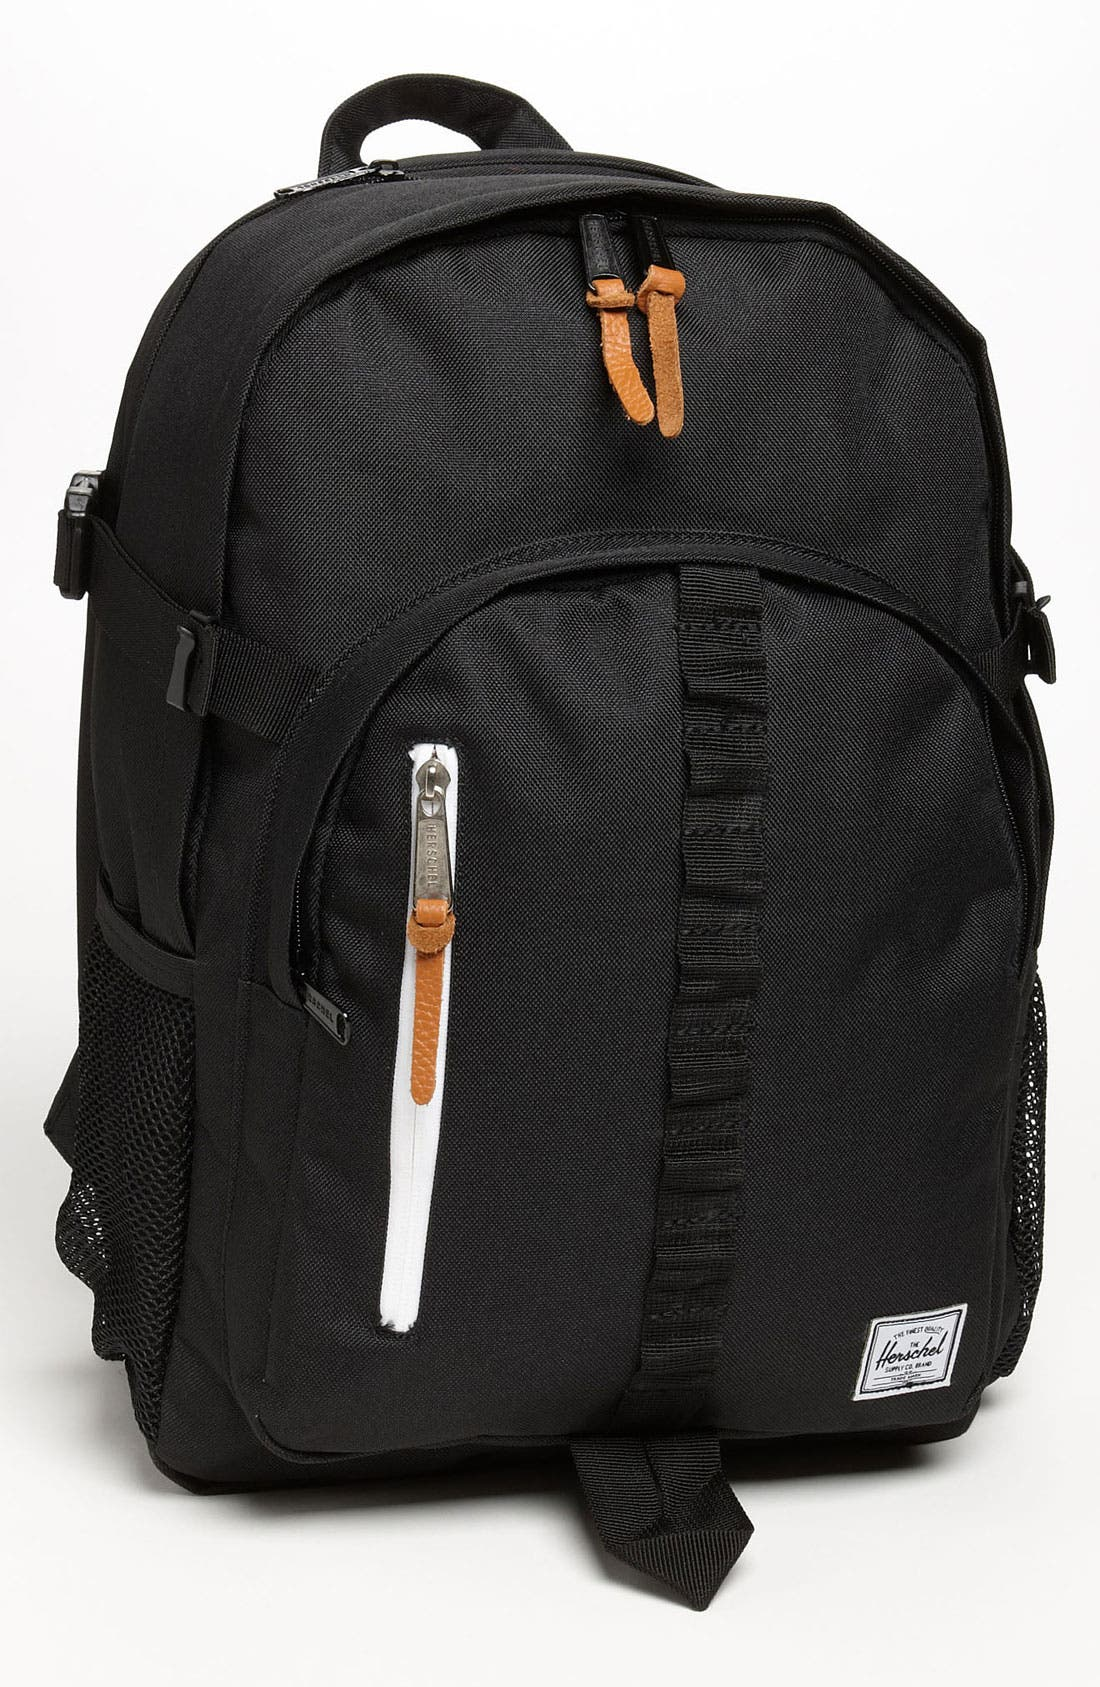 HERSCHEL SUPPLY CO. 'Parkgate' Backpack, Main, color, 001